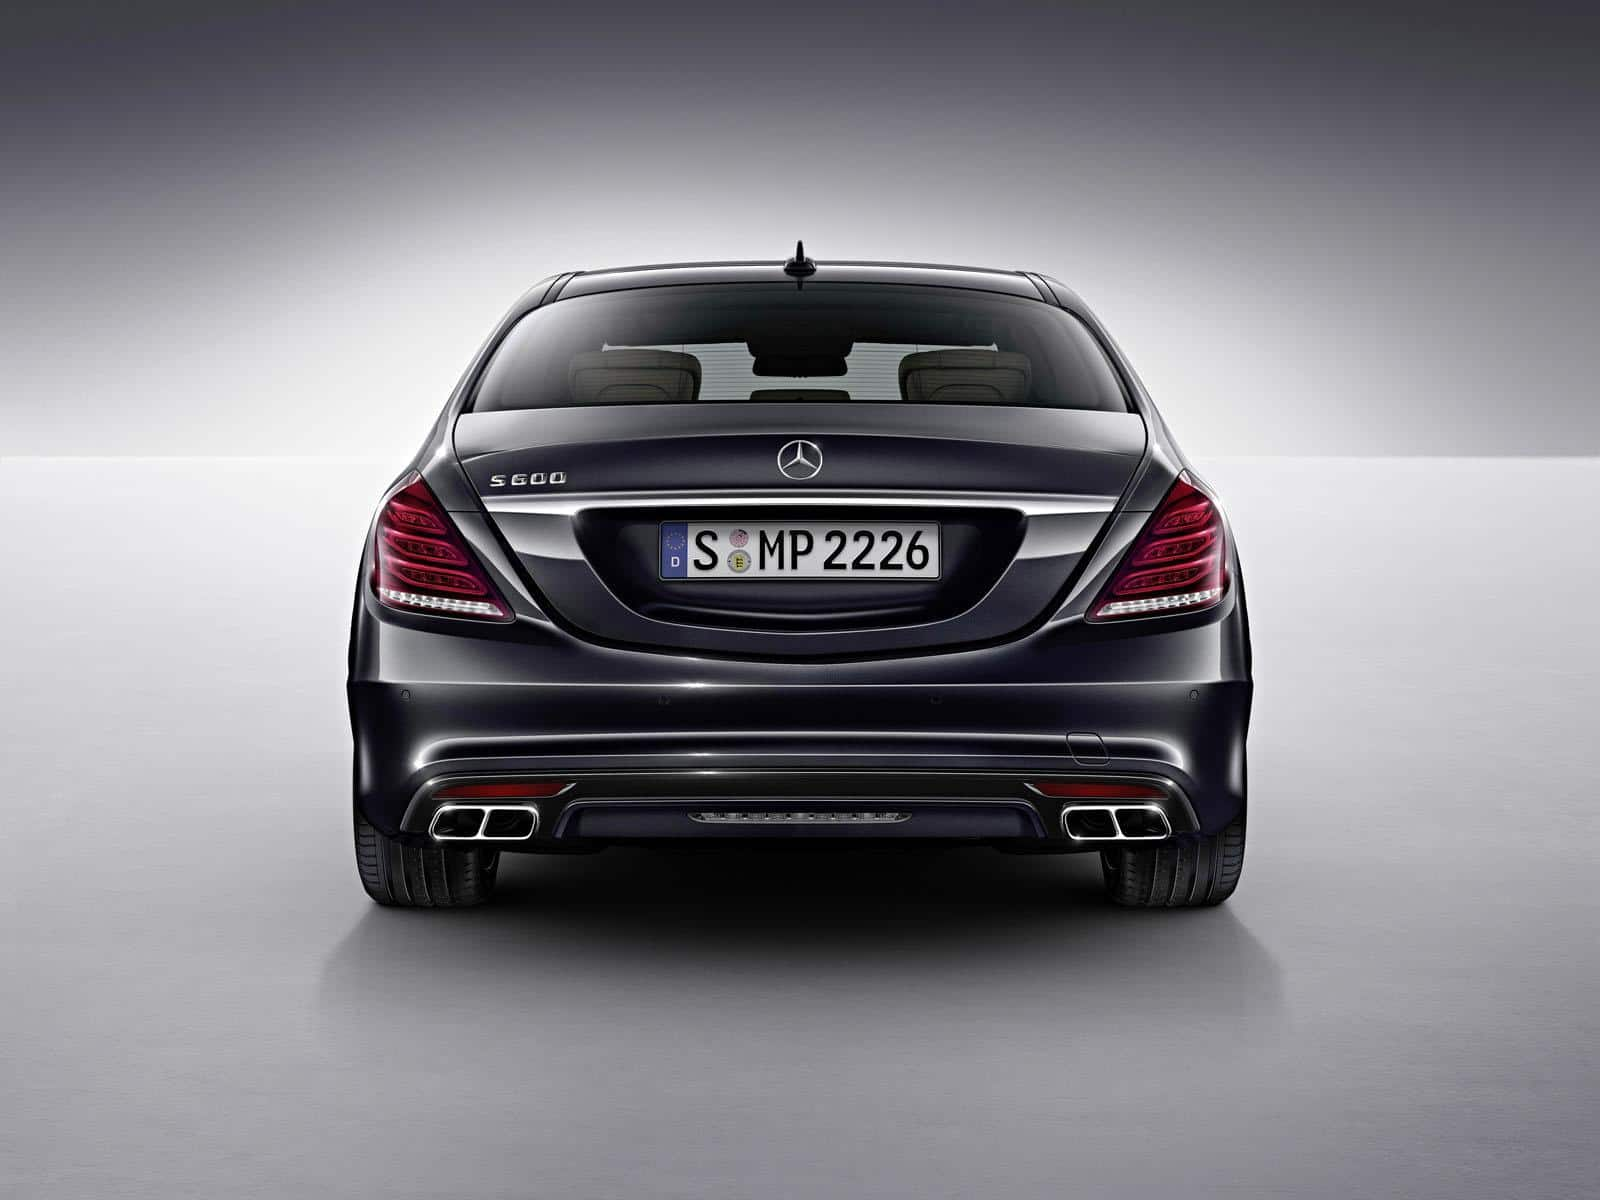 The new 2015 Mercedes S600